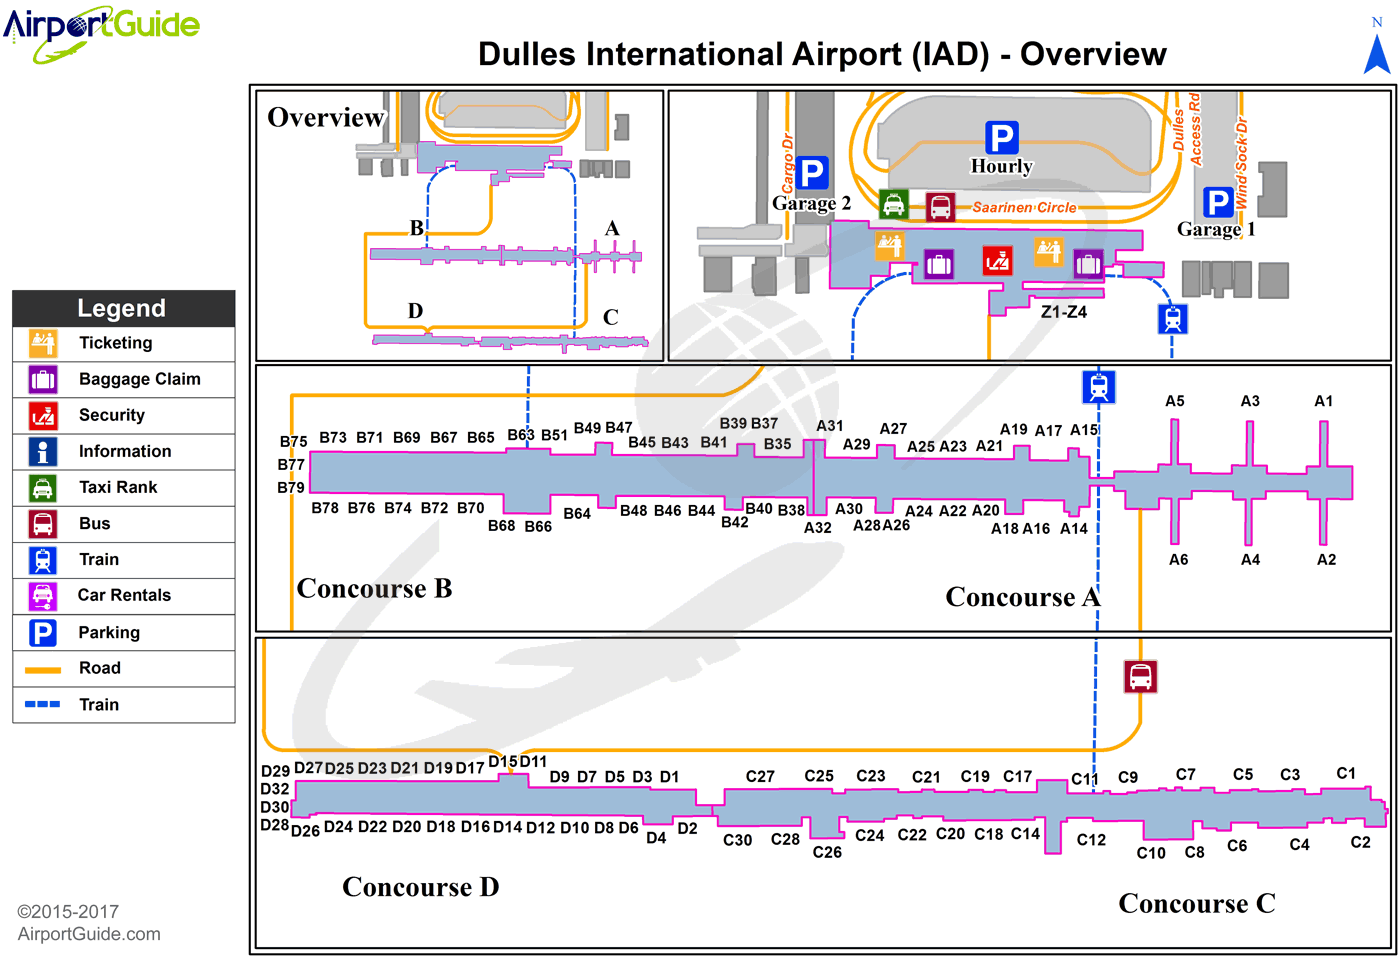 washington dulles international airport kiad iad airport guide rh airportguide com ISP Diagram JFK Airport Diagram